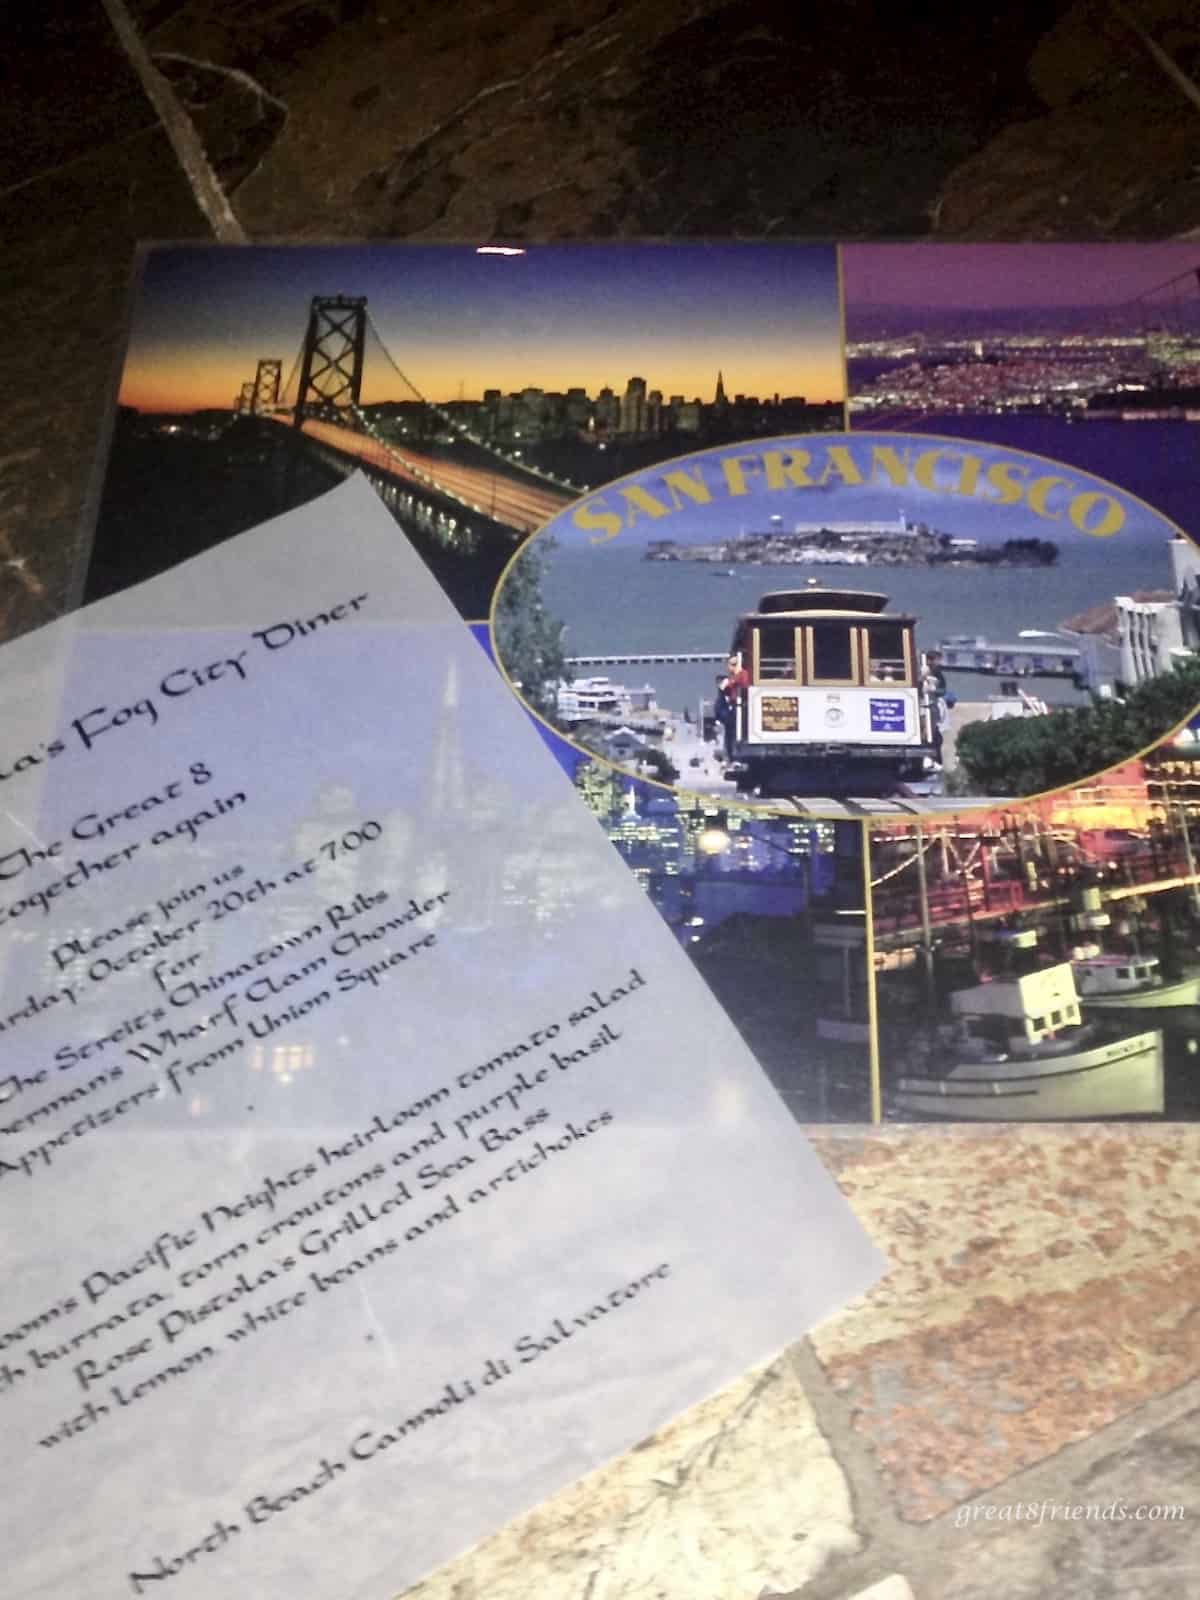 San Francisco themed dinner party invitation.